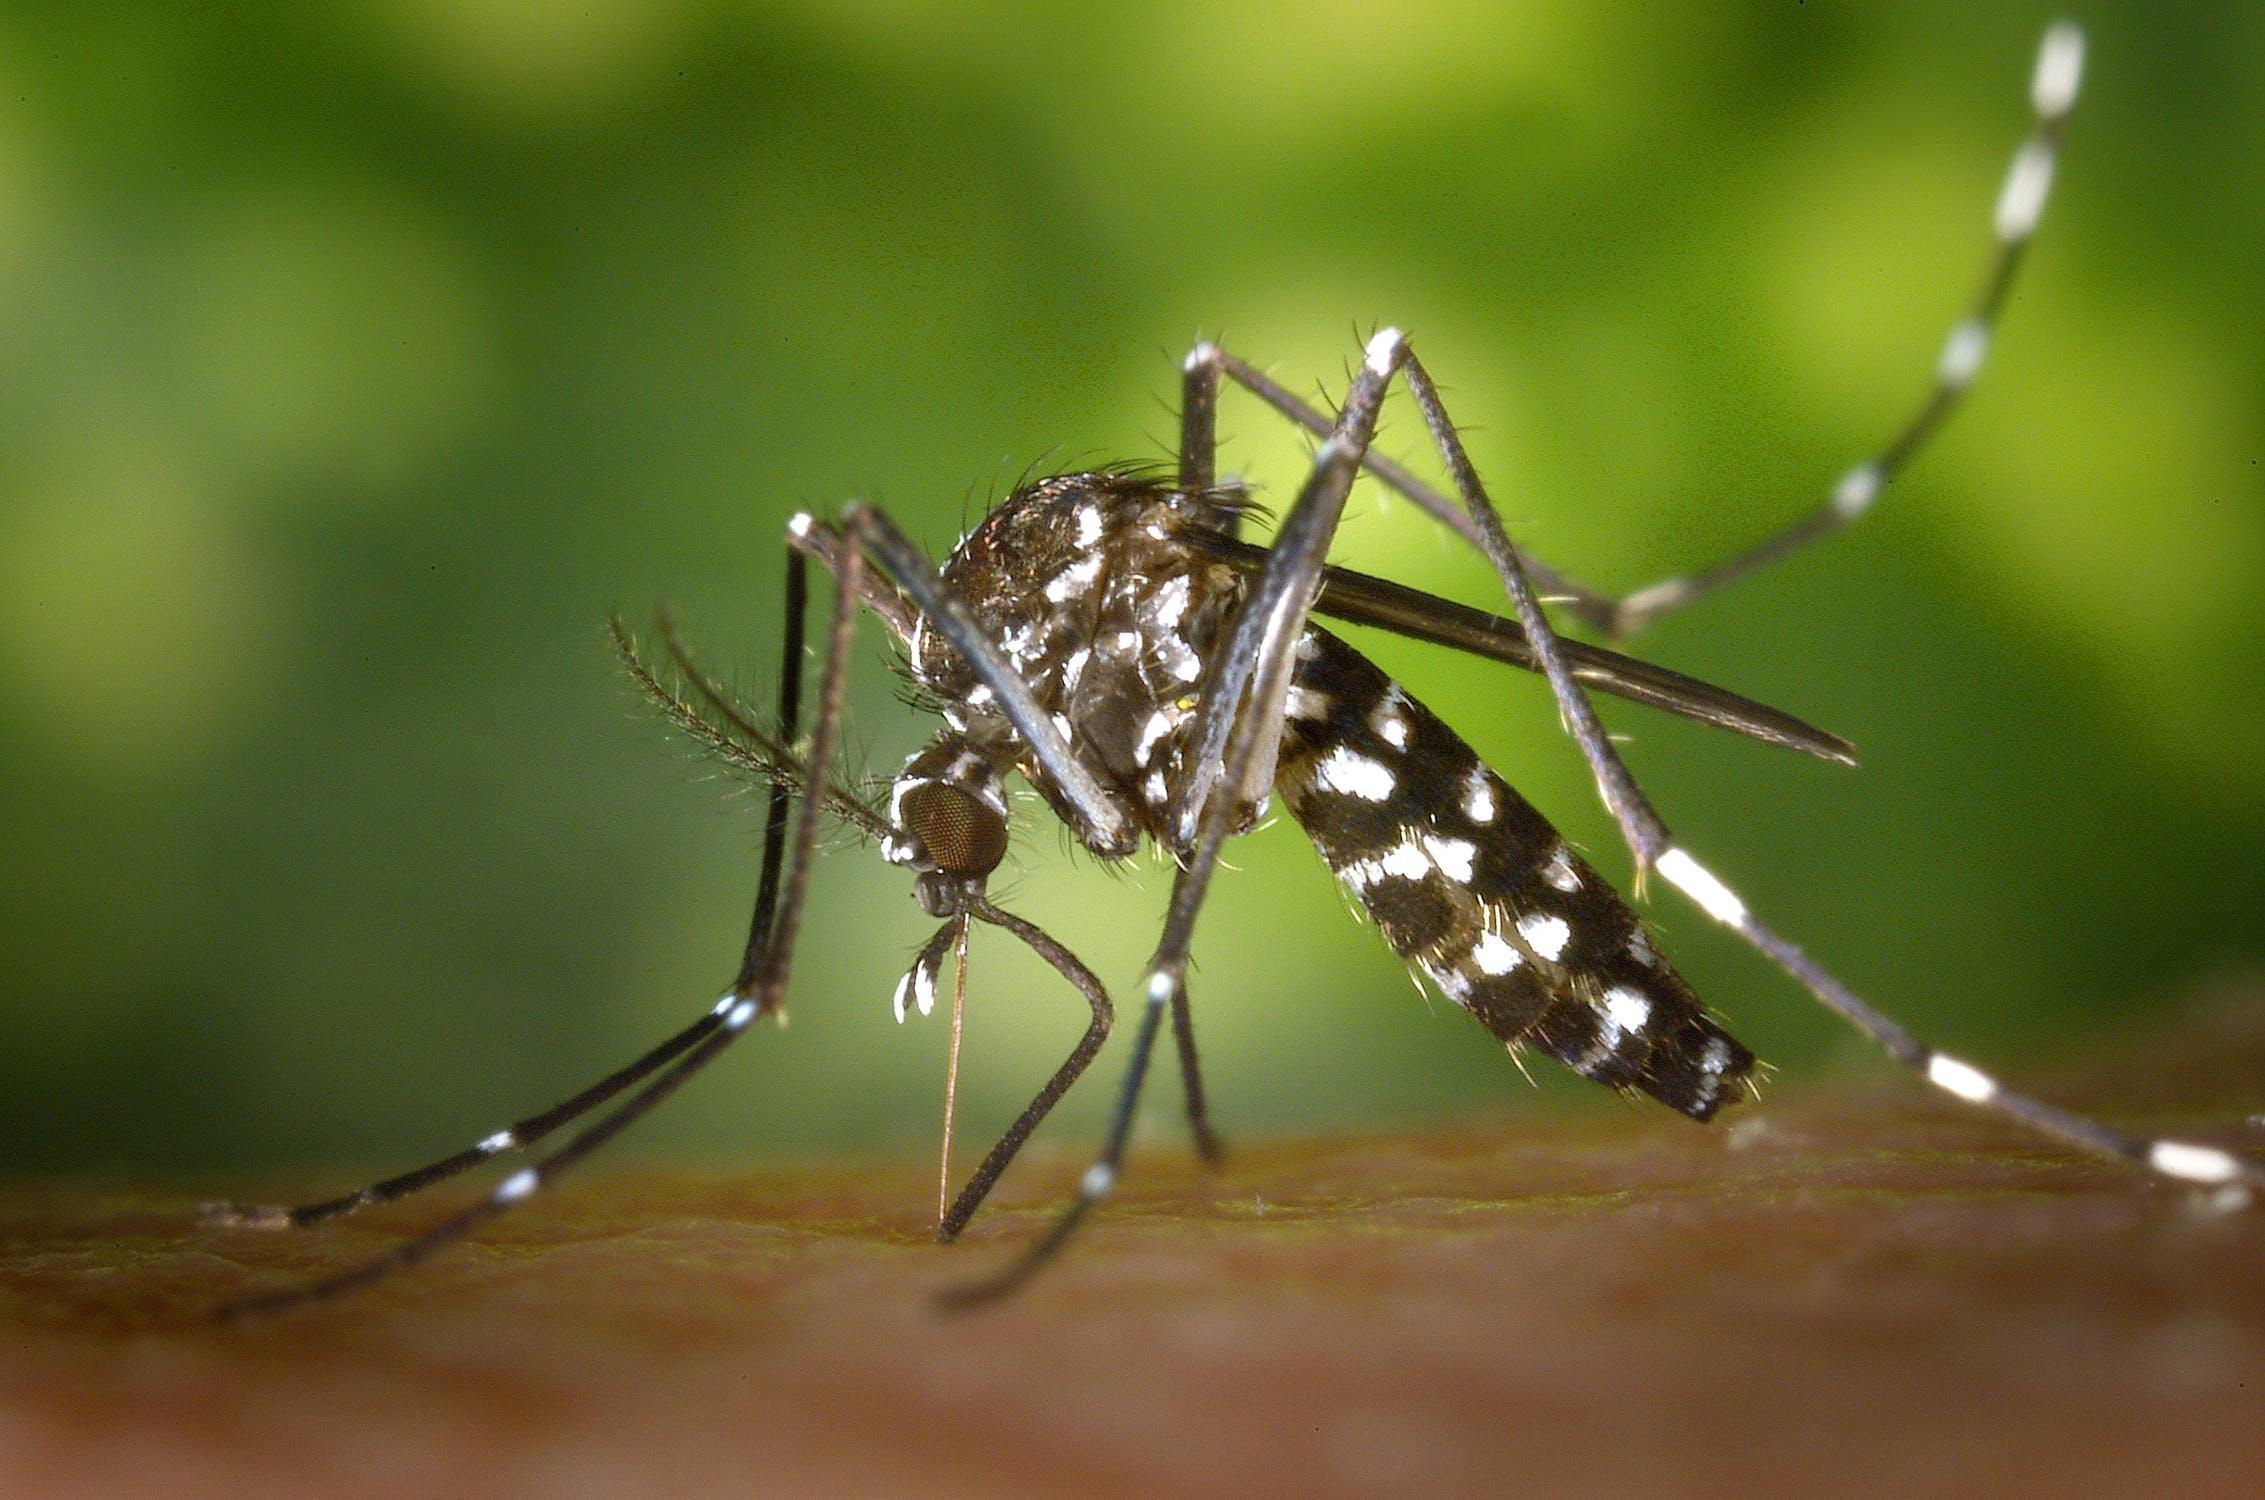 Campbell County West Nile Virus Cases Confirmed